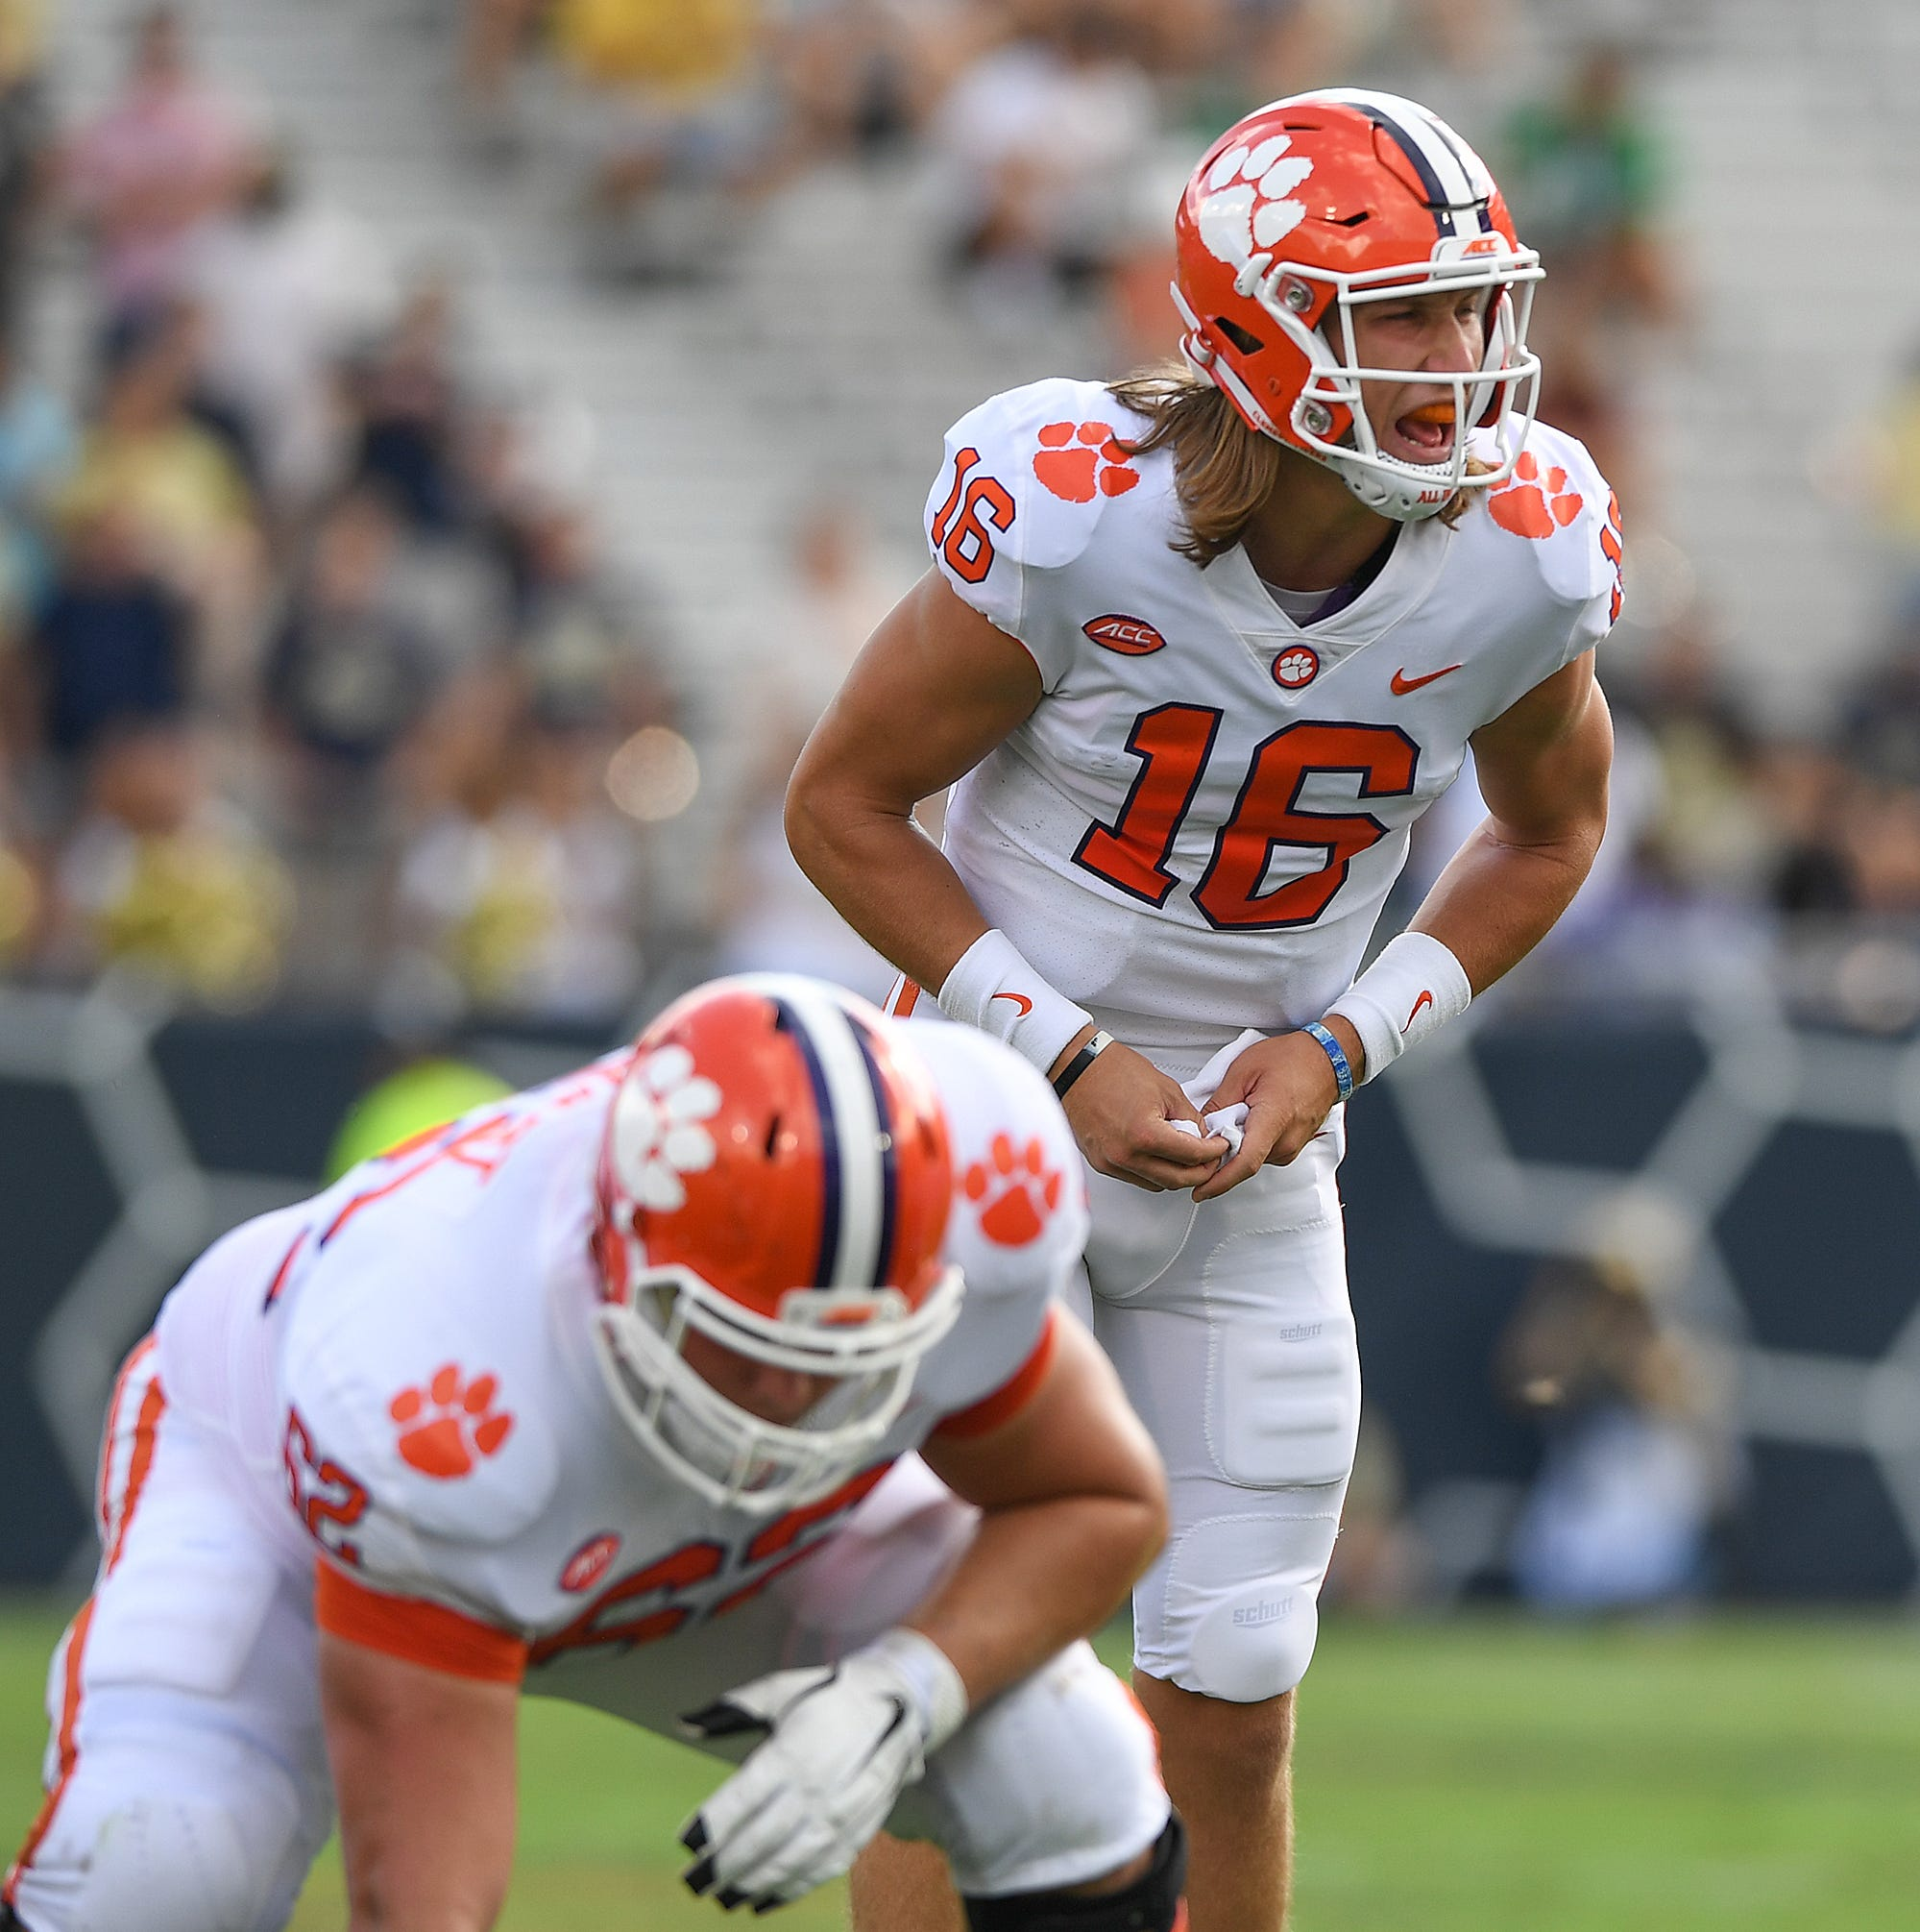 Takeaways from the Clemson-Georgia Tech football game